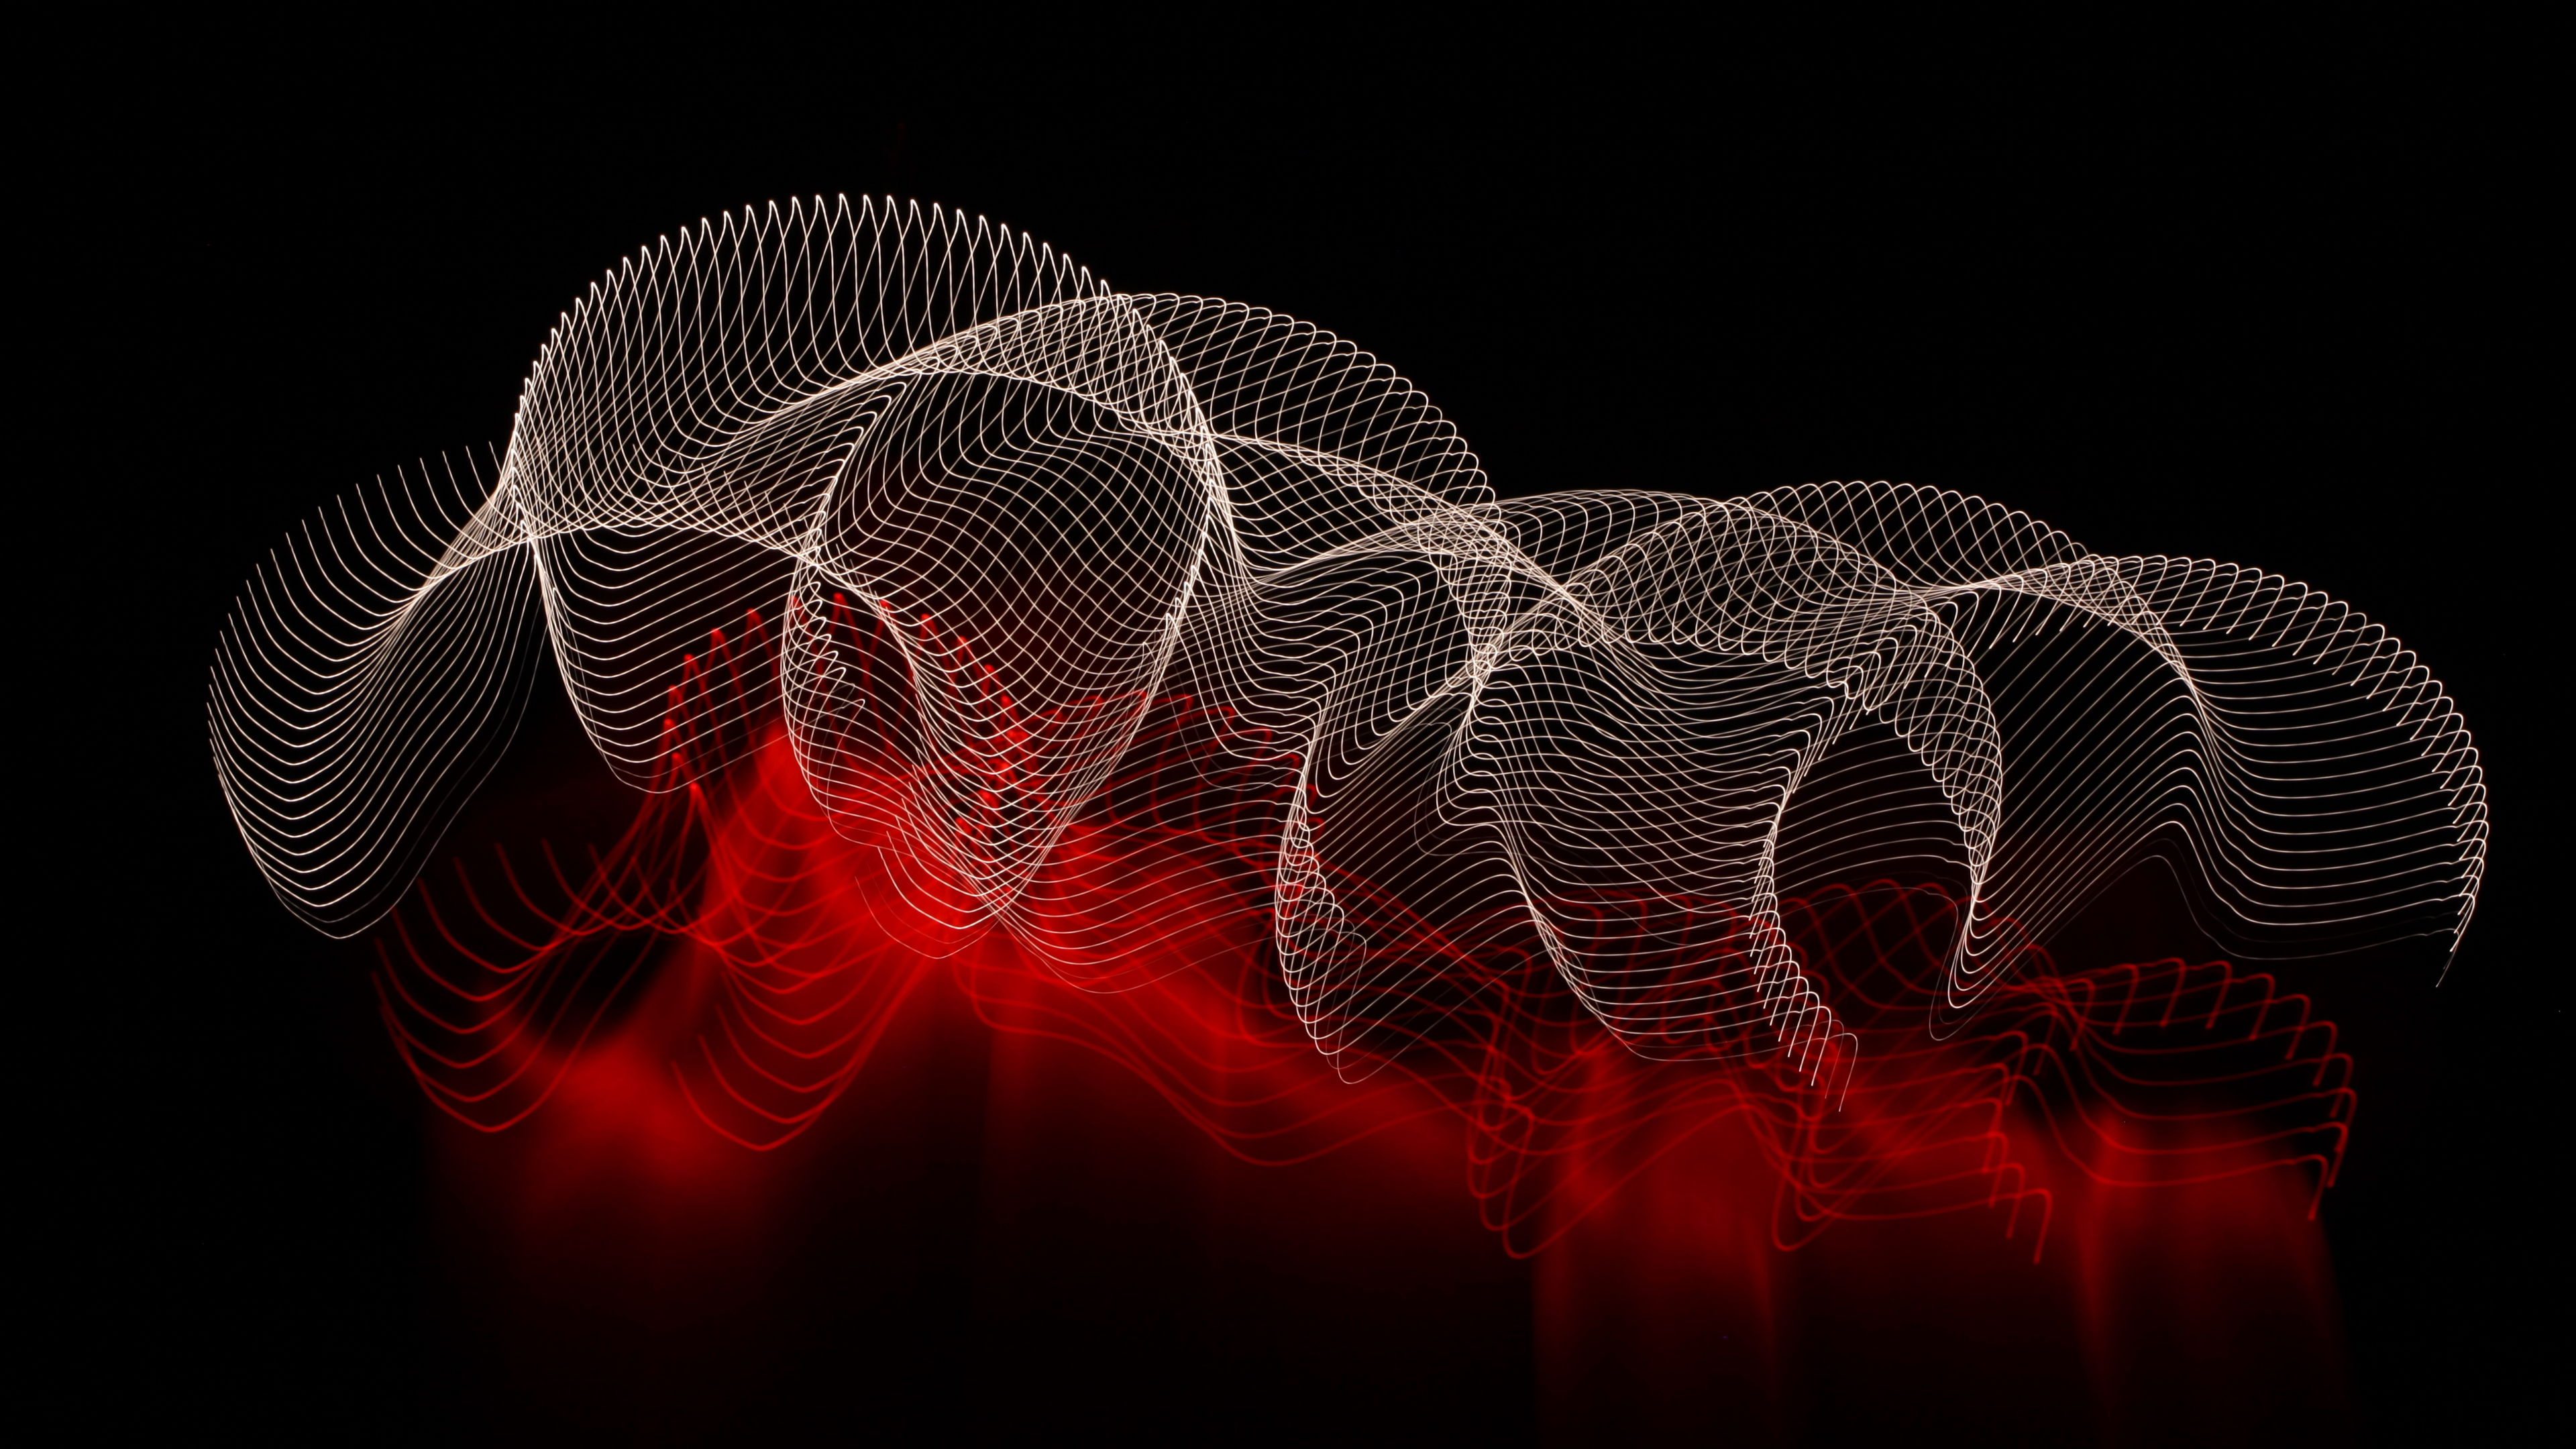 abstract lines spots dark background 4k 1539370461 - abstract, lines, spots, dark background 4k - spots, Lines, abstract